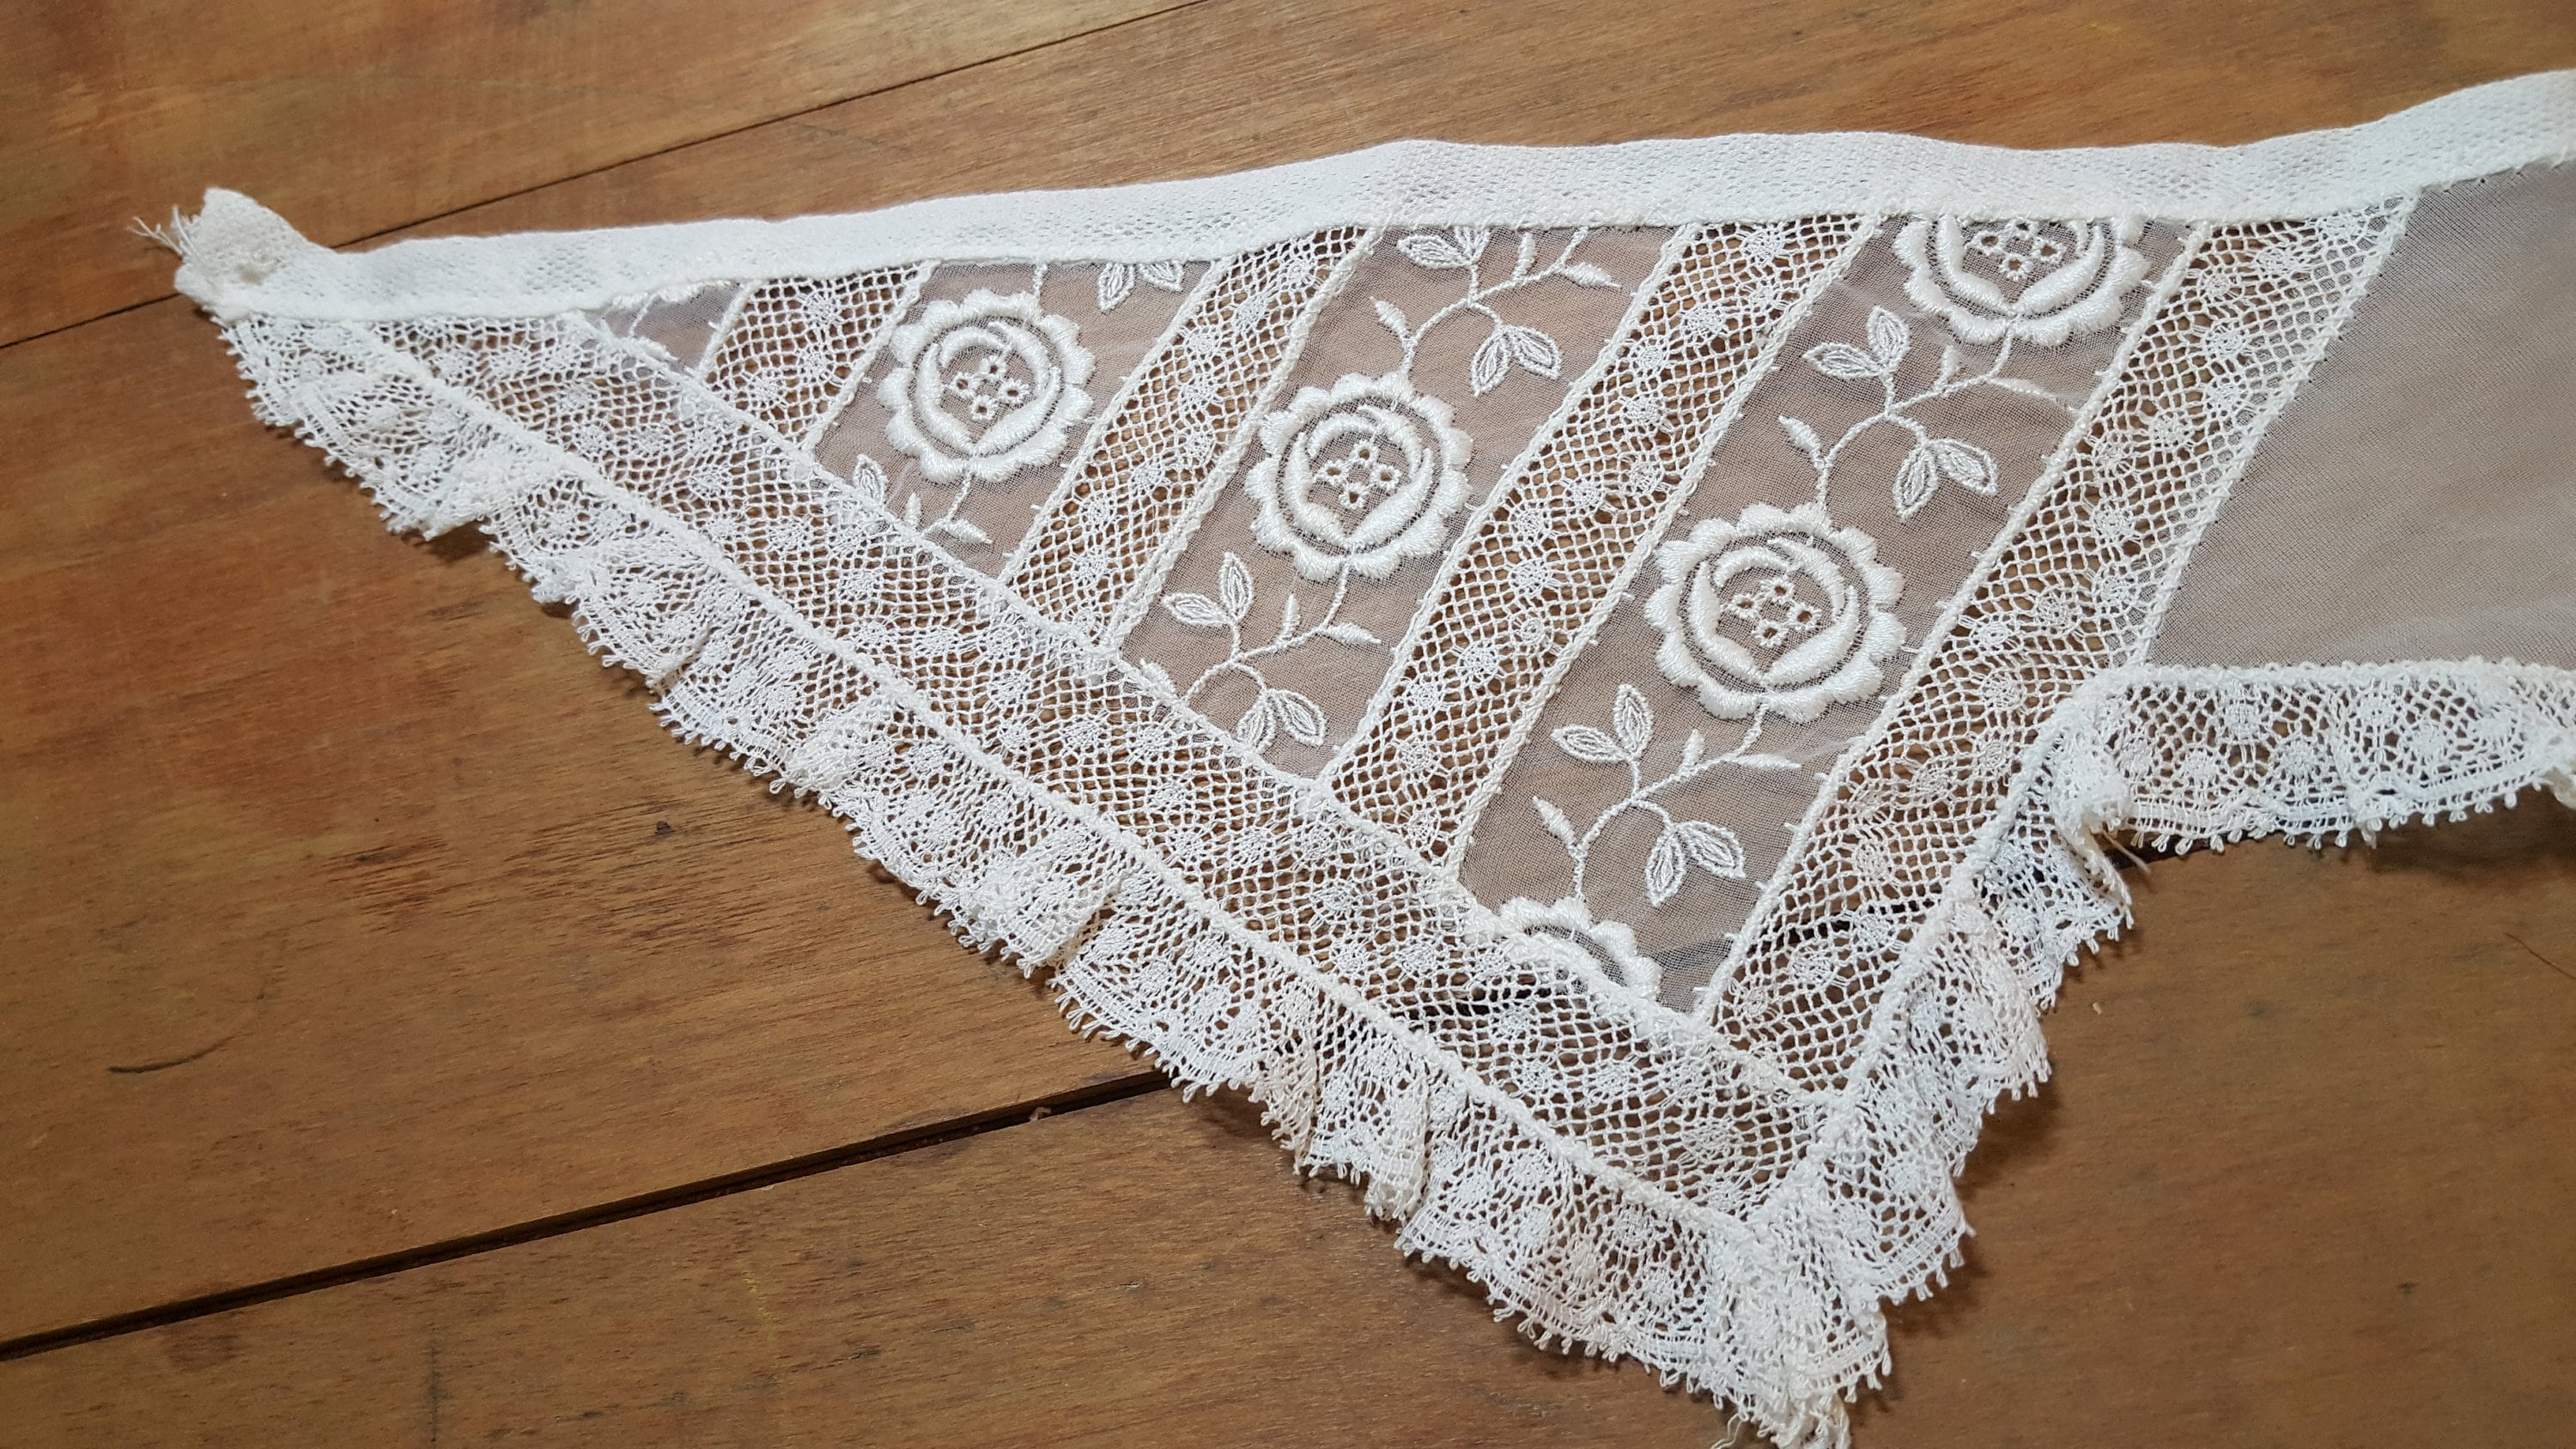 White Organdy Net Lace Collar Floral Embroidery Heirloom Etsy